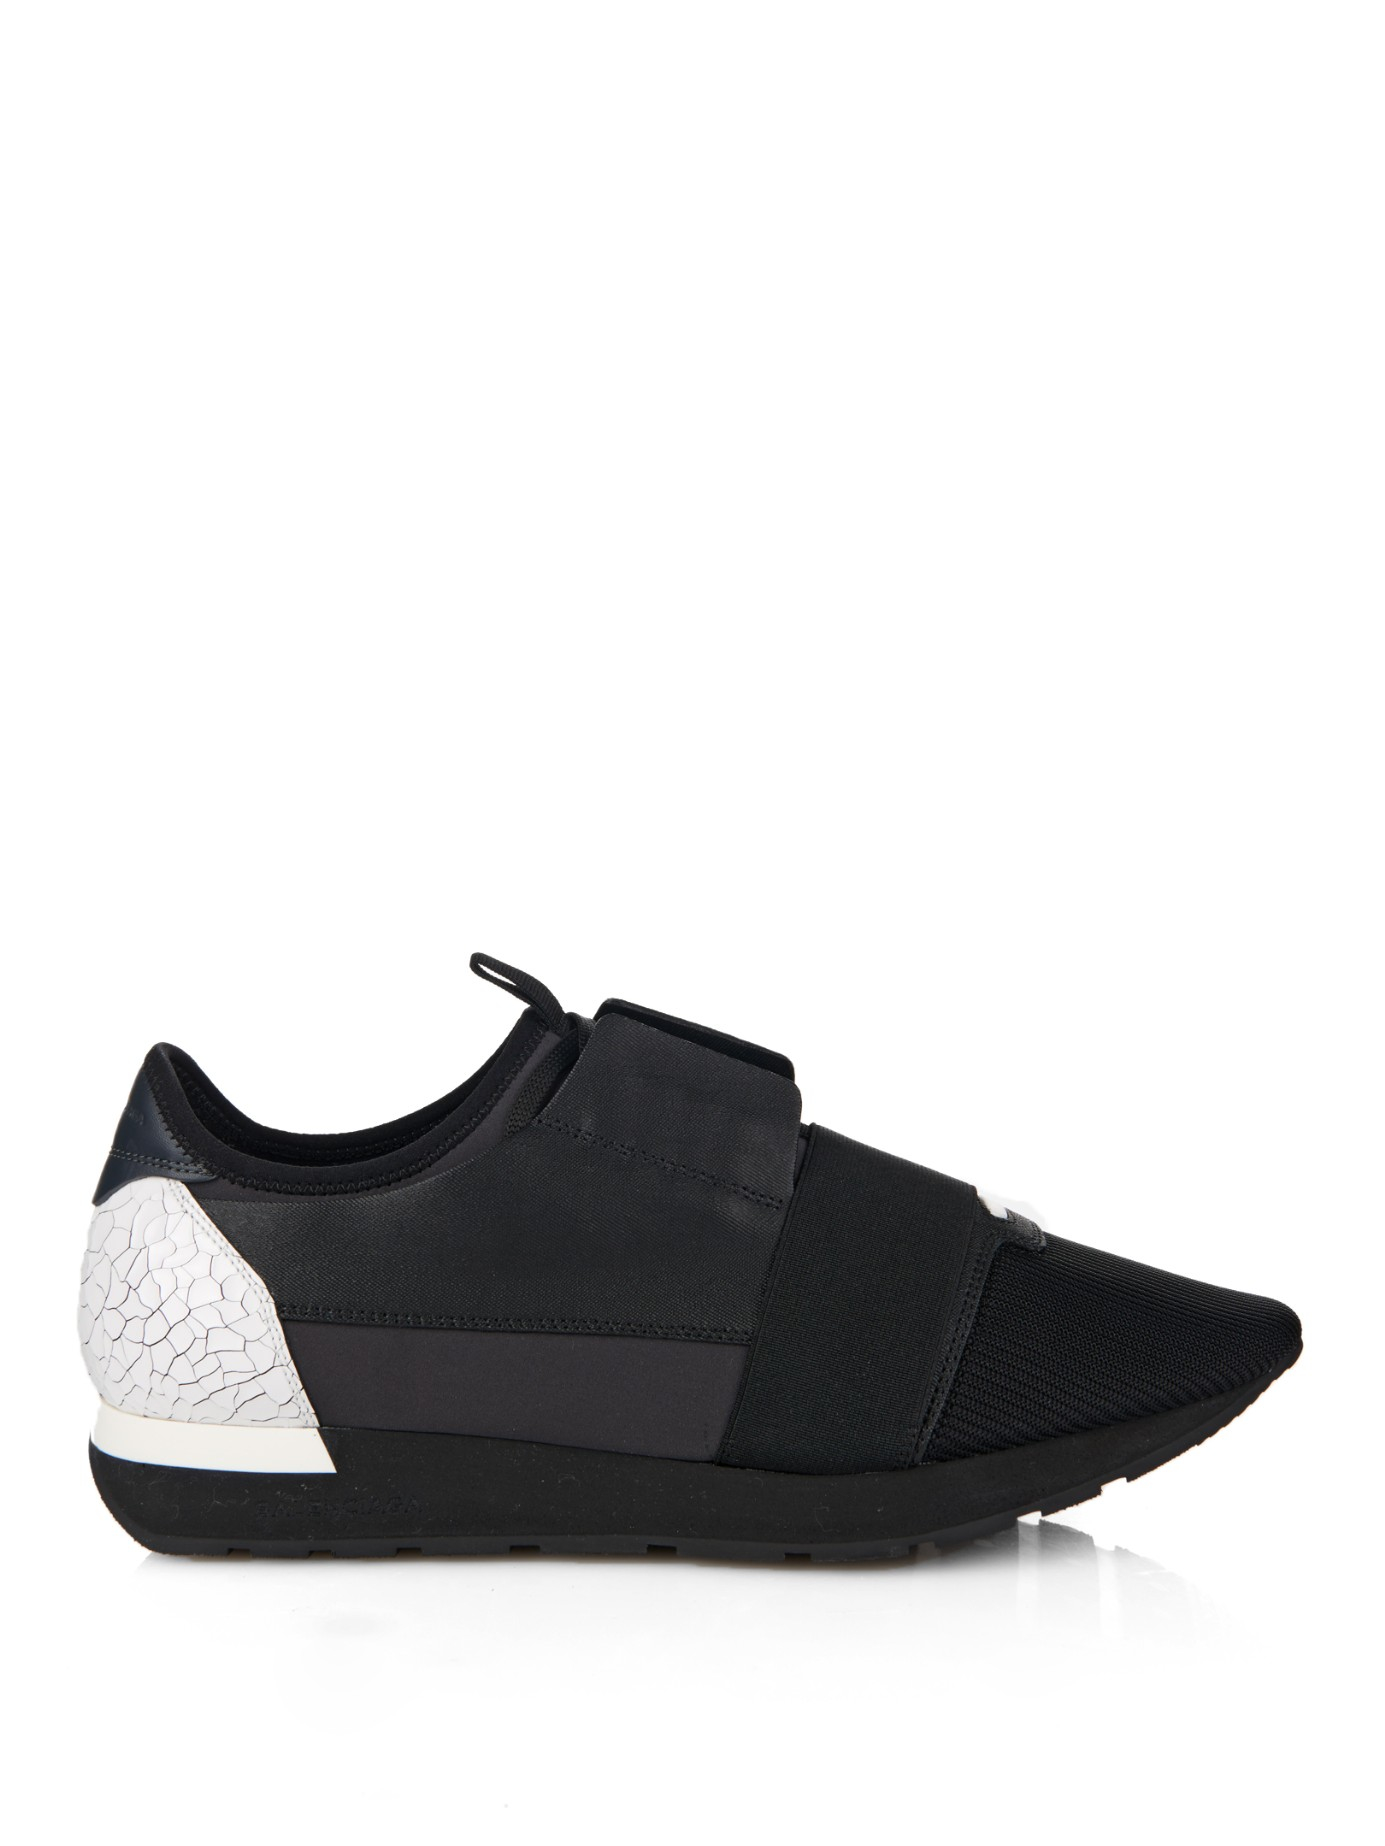 balenciaga leather low top trainers in black for men lyst. Black Bedroom Furniture Sets. Home Design Ideas